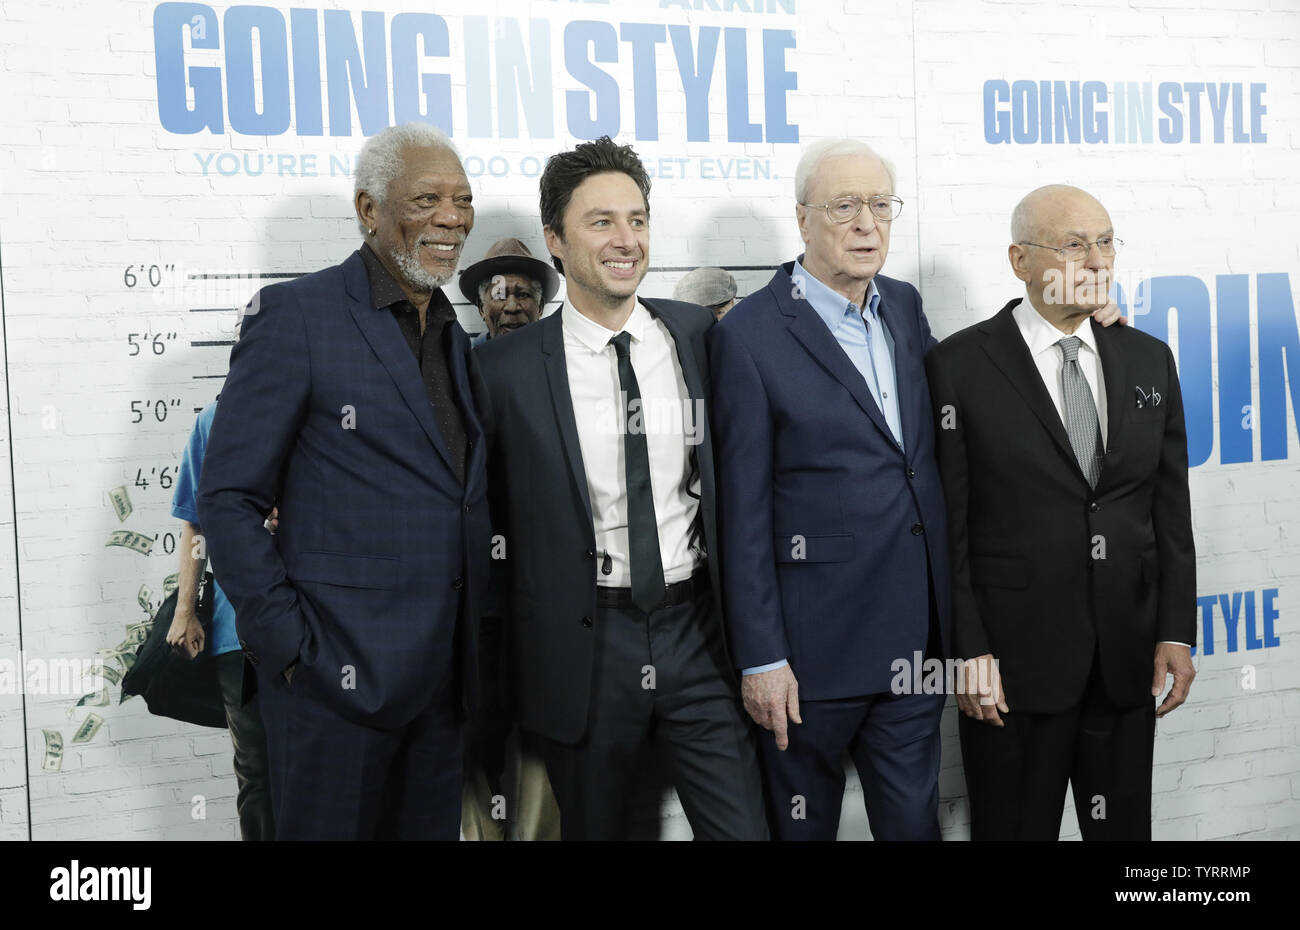 Morgan Freeman, Zach Braff, Michael Caine and Alan Arkin arrive on the red carpet at the 'Going in Style' World Premiere at SVA Theatre on March 30, 2017 in New York City.    Photo by John Angelillo/UPI - Stock Image